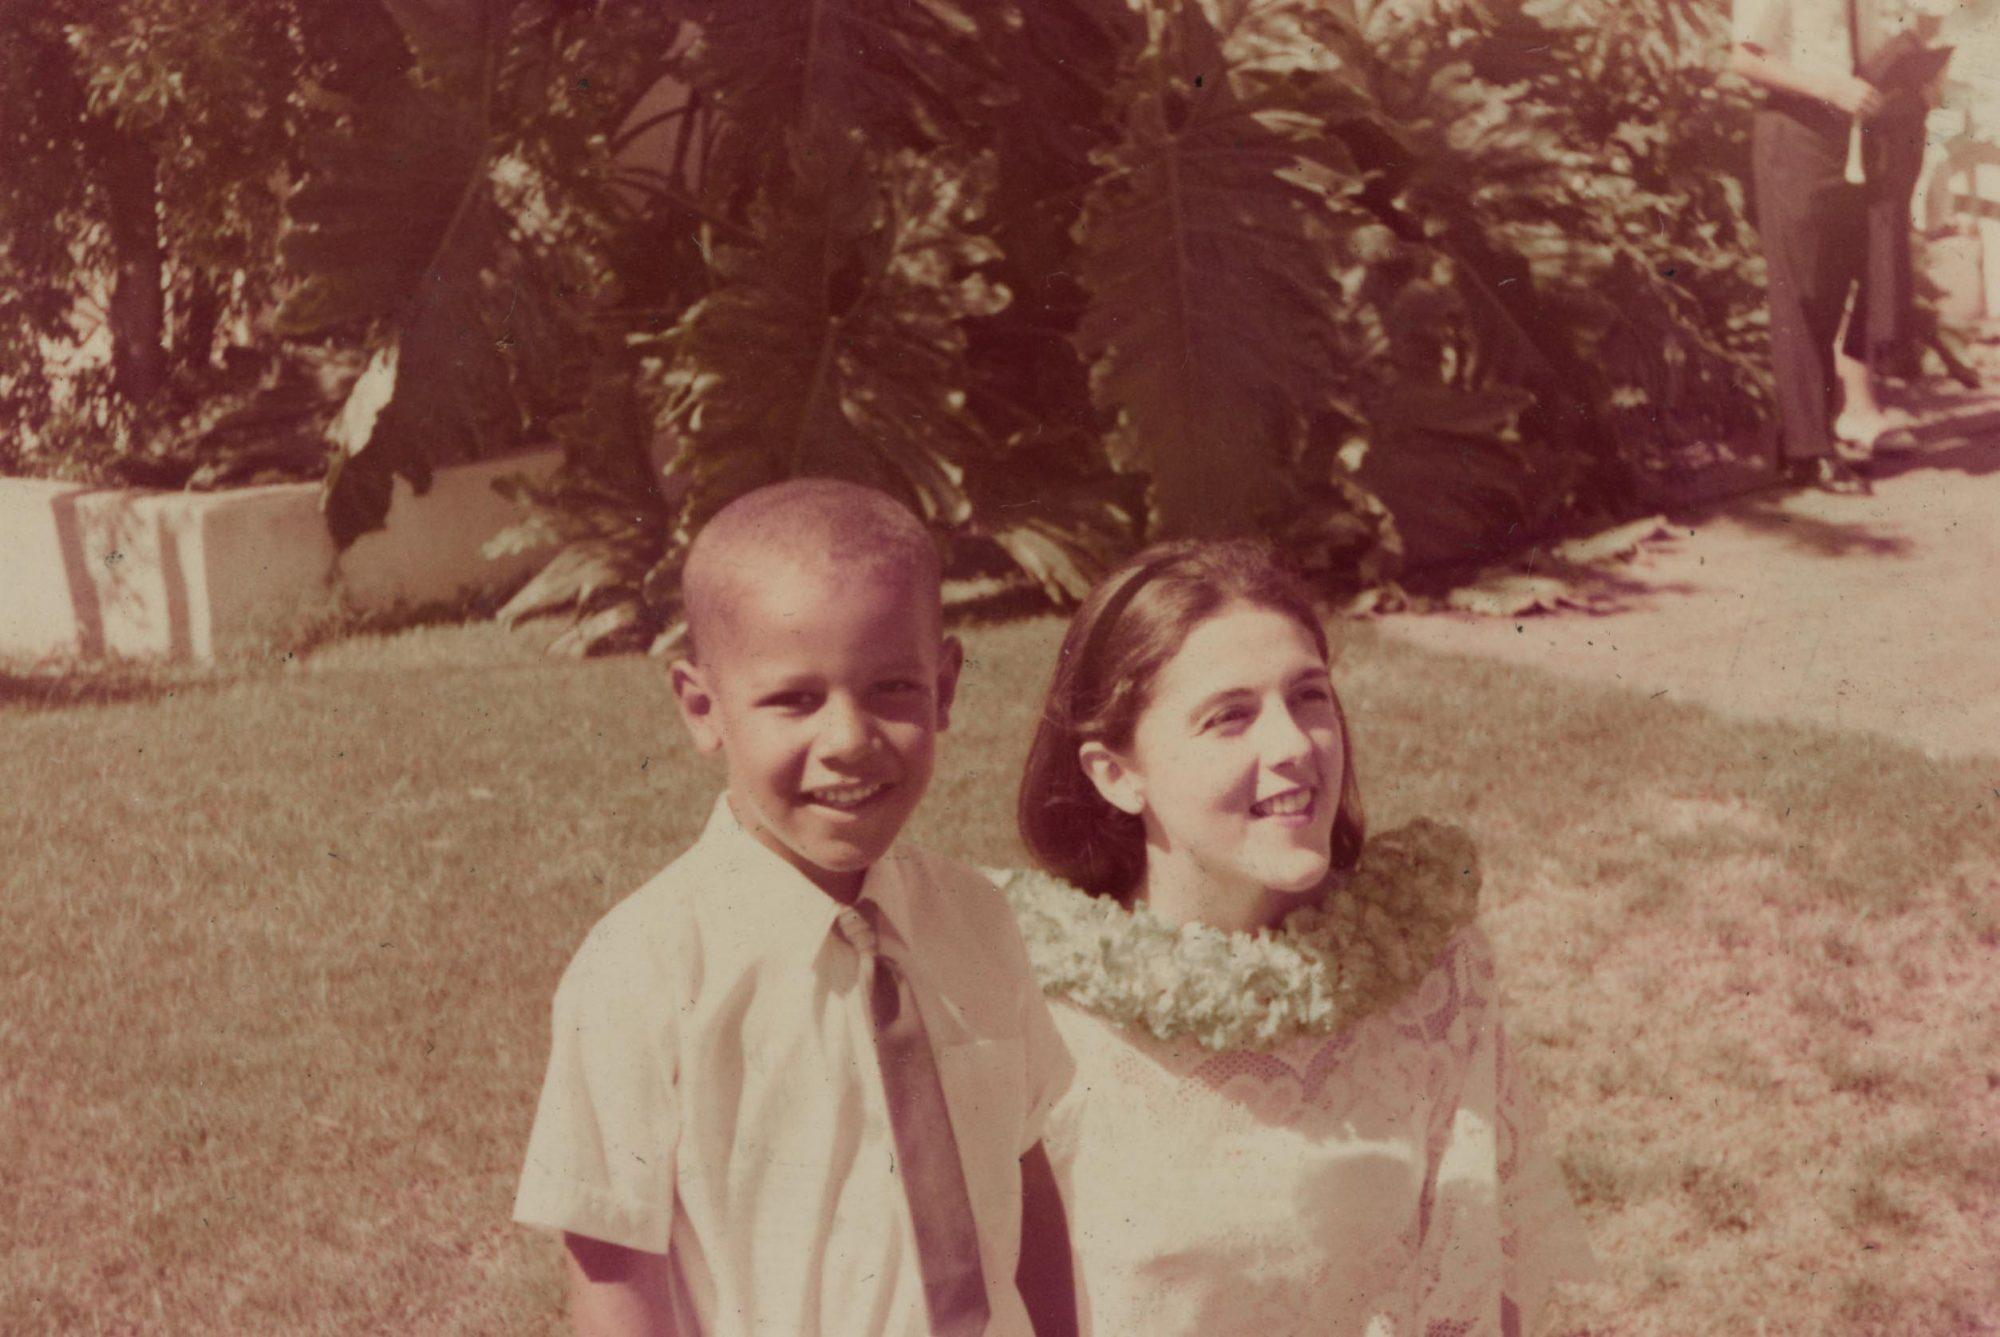 <p>Before he was the leader of the free world, he was just a little boy in Hawaii. Here he is pictured with his mother, Ann Dunham, in the '60s. </p>